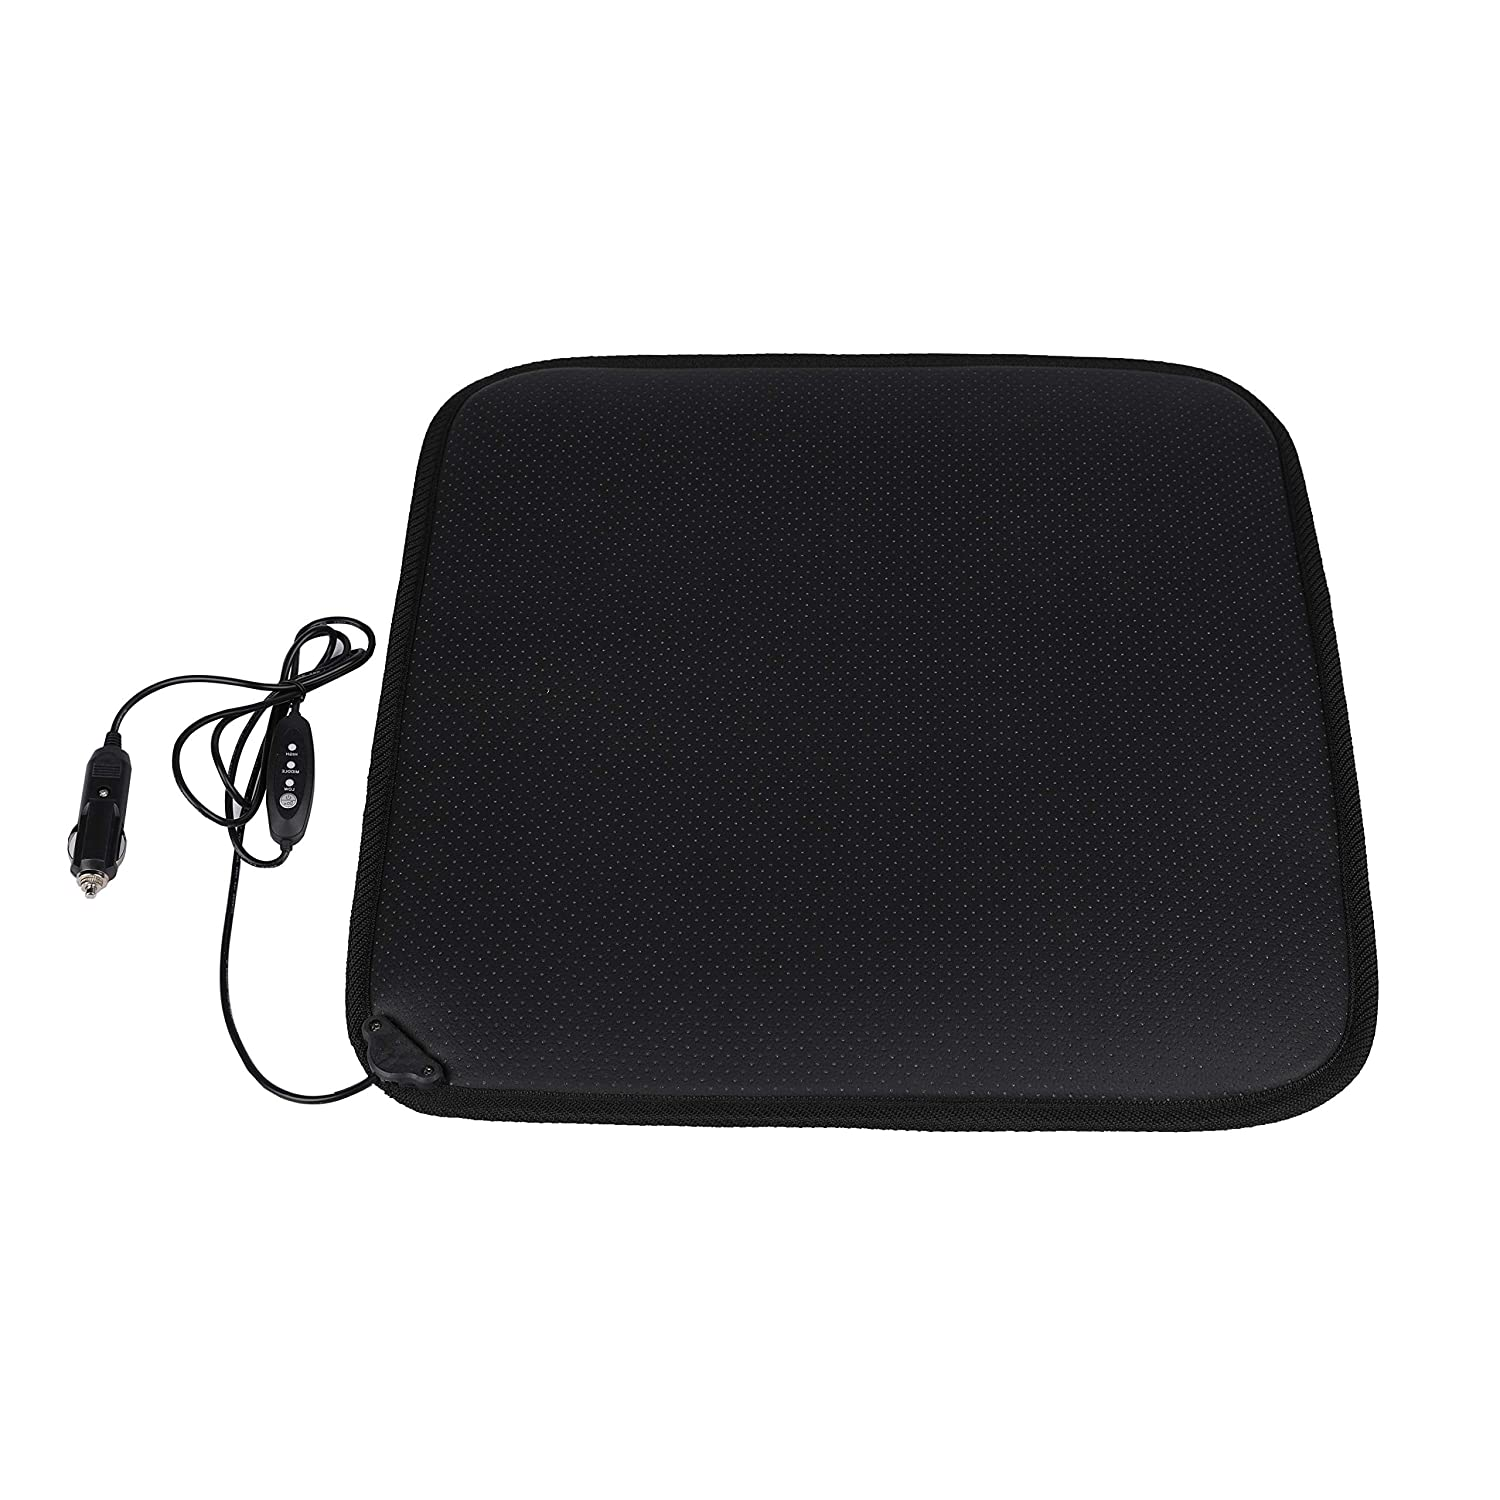 Facon 12Volt Heater Car Seat Cushion with 3-Way Temperature Controller for Car Trucks Vehicle